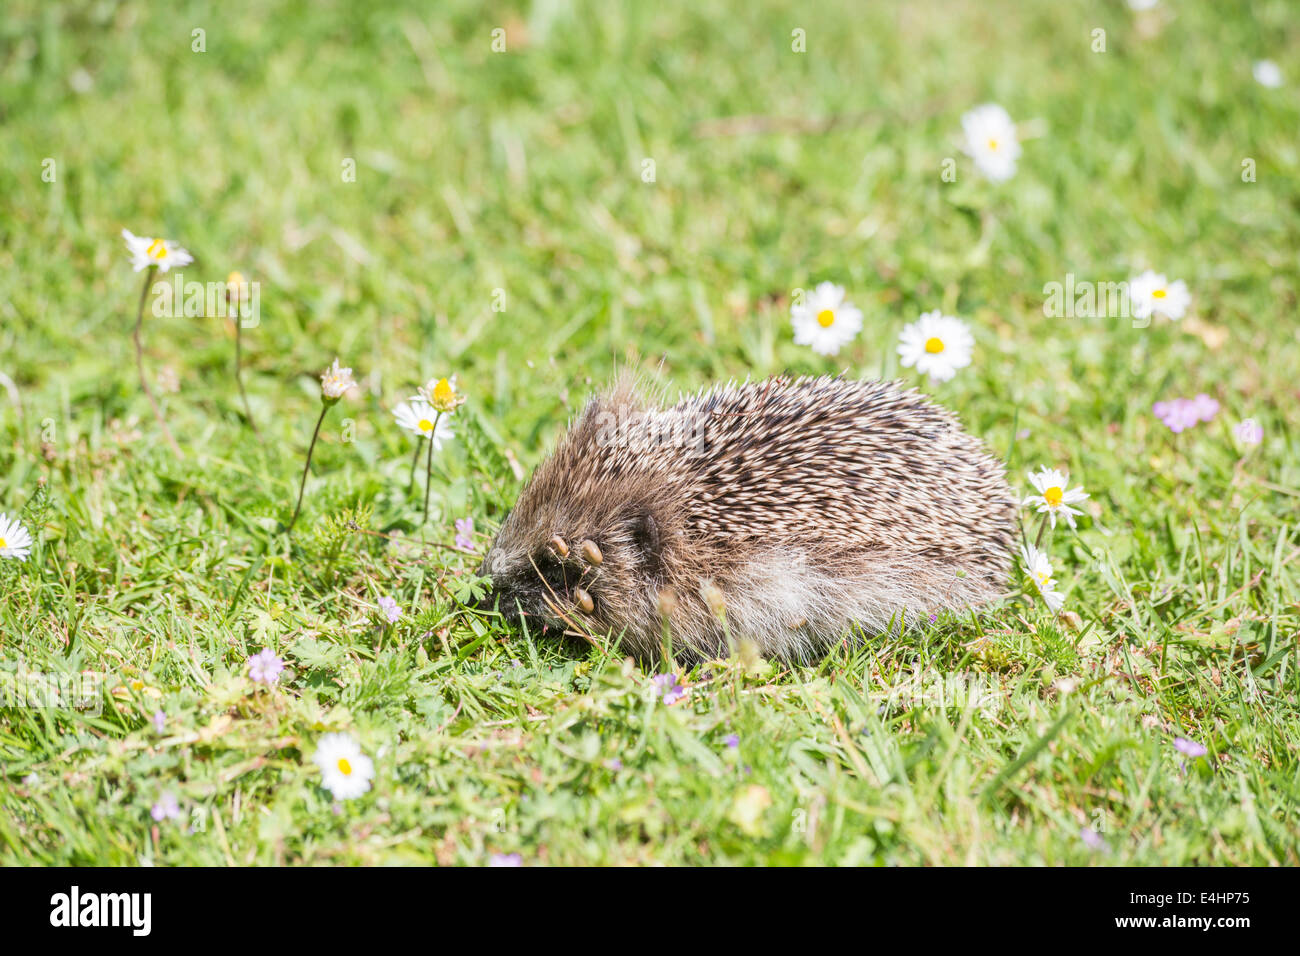 Side view (lateral view) of a European hedgehog with an infestation of ticks on its head around its eye foraging - Stock Image